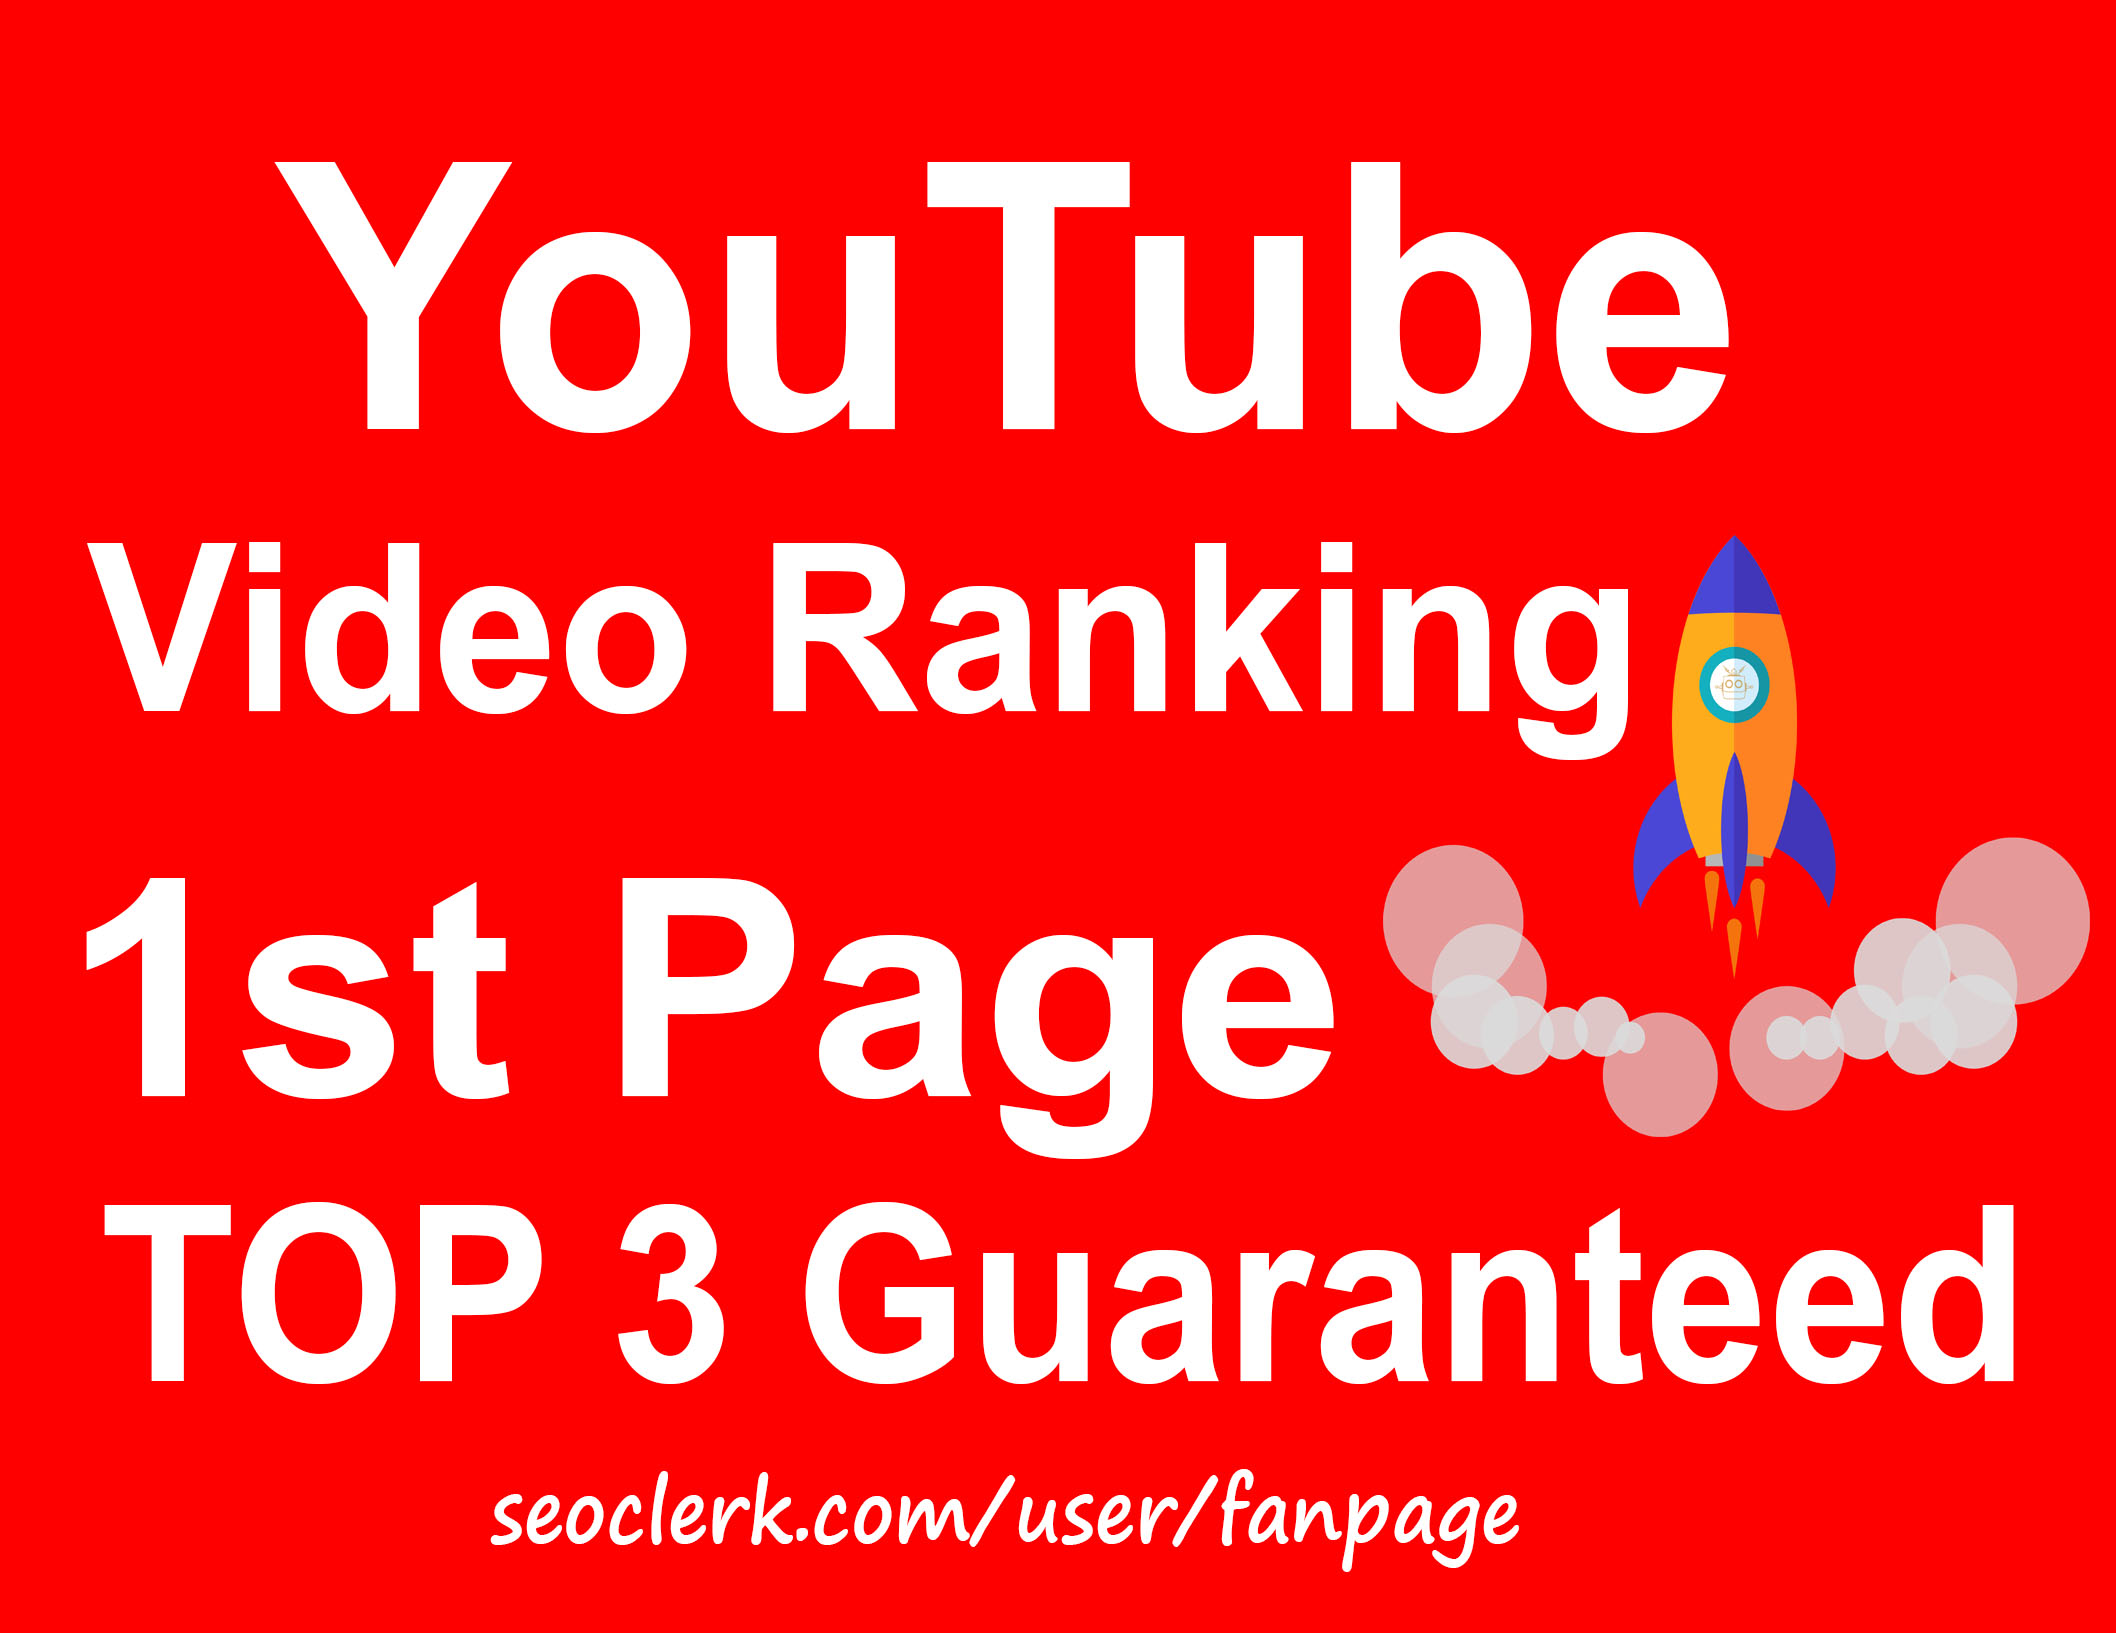 YouTube Video Ranking Top 1 Page Guaranteed - Best Result 2019